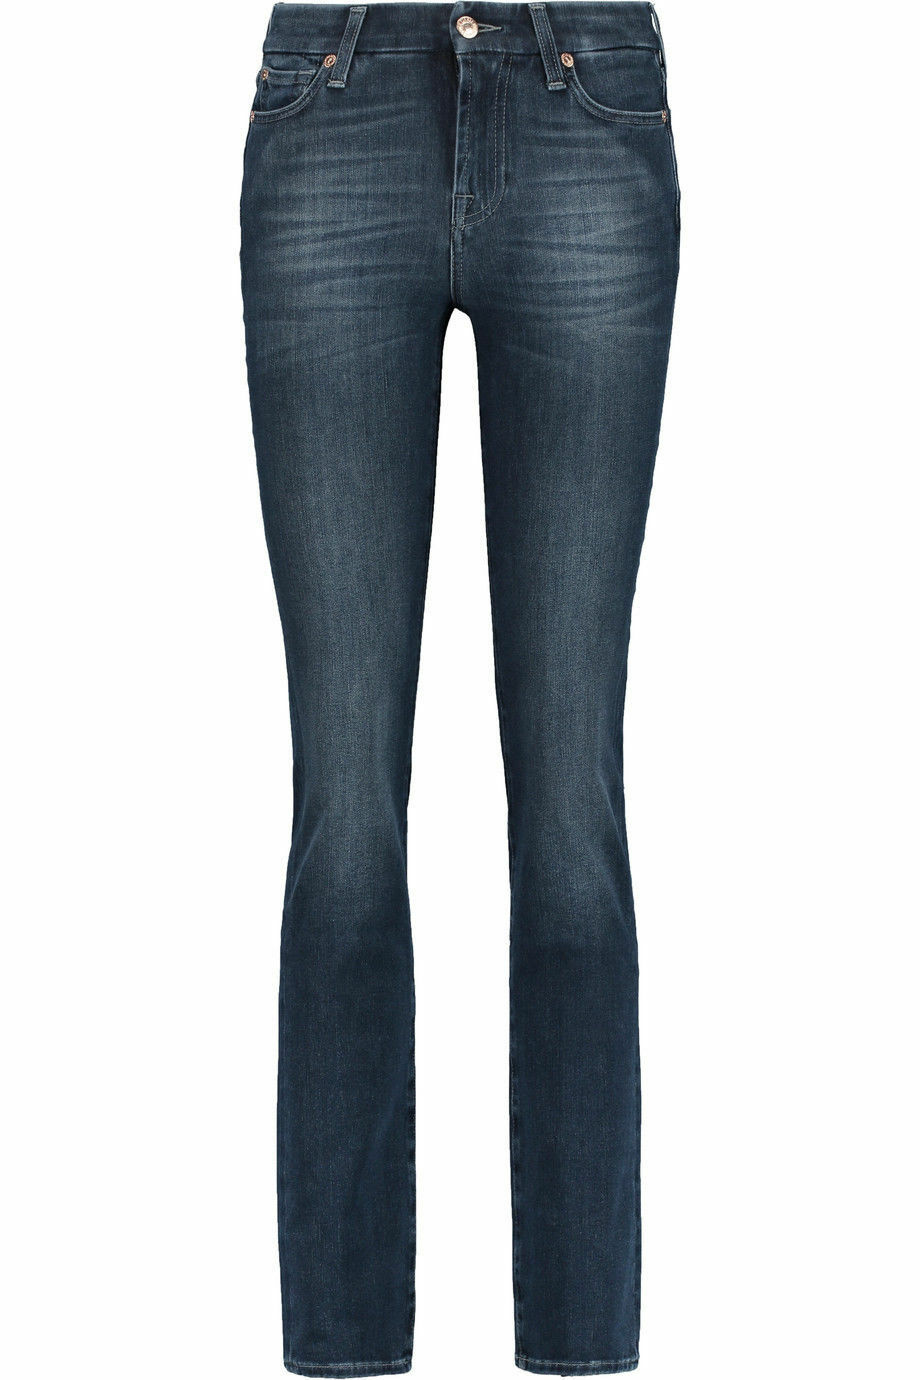 NEW + TAGS  7 FOR ALL MANKIND  STRAIGHT LEG FADED JEANS S 29 x 33 LEG RRP